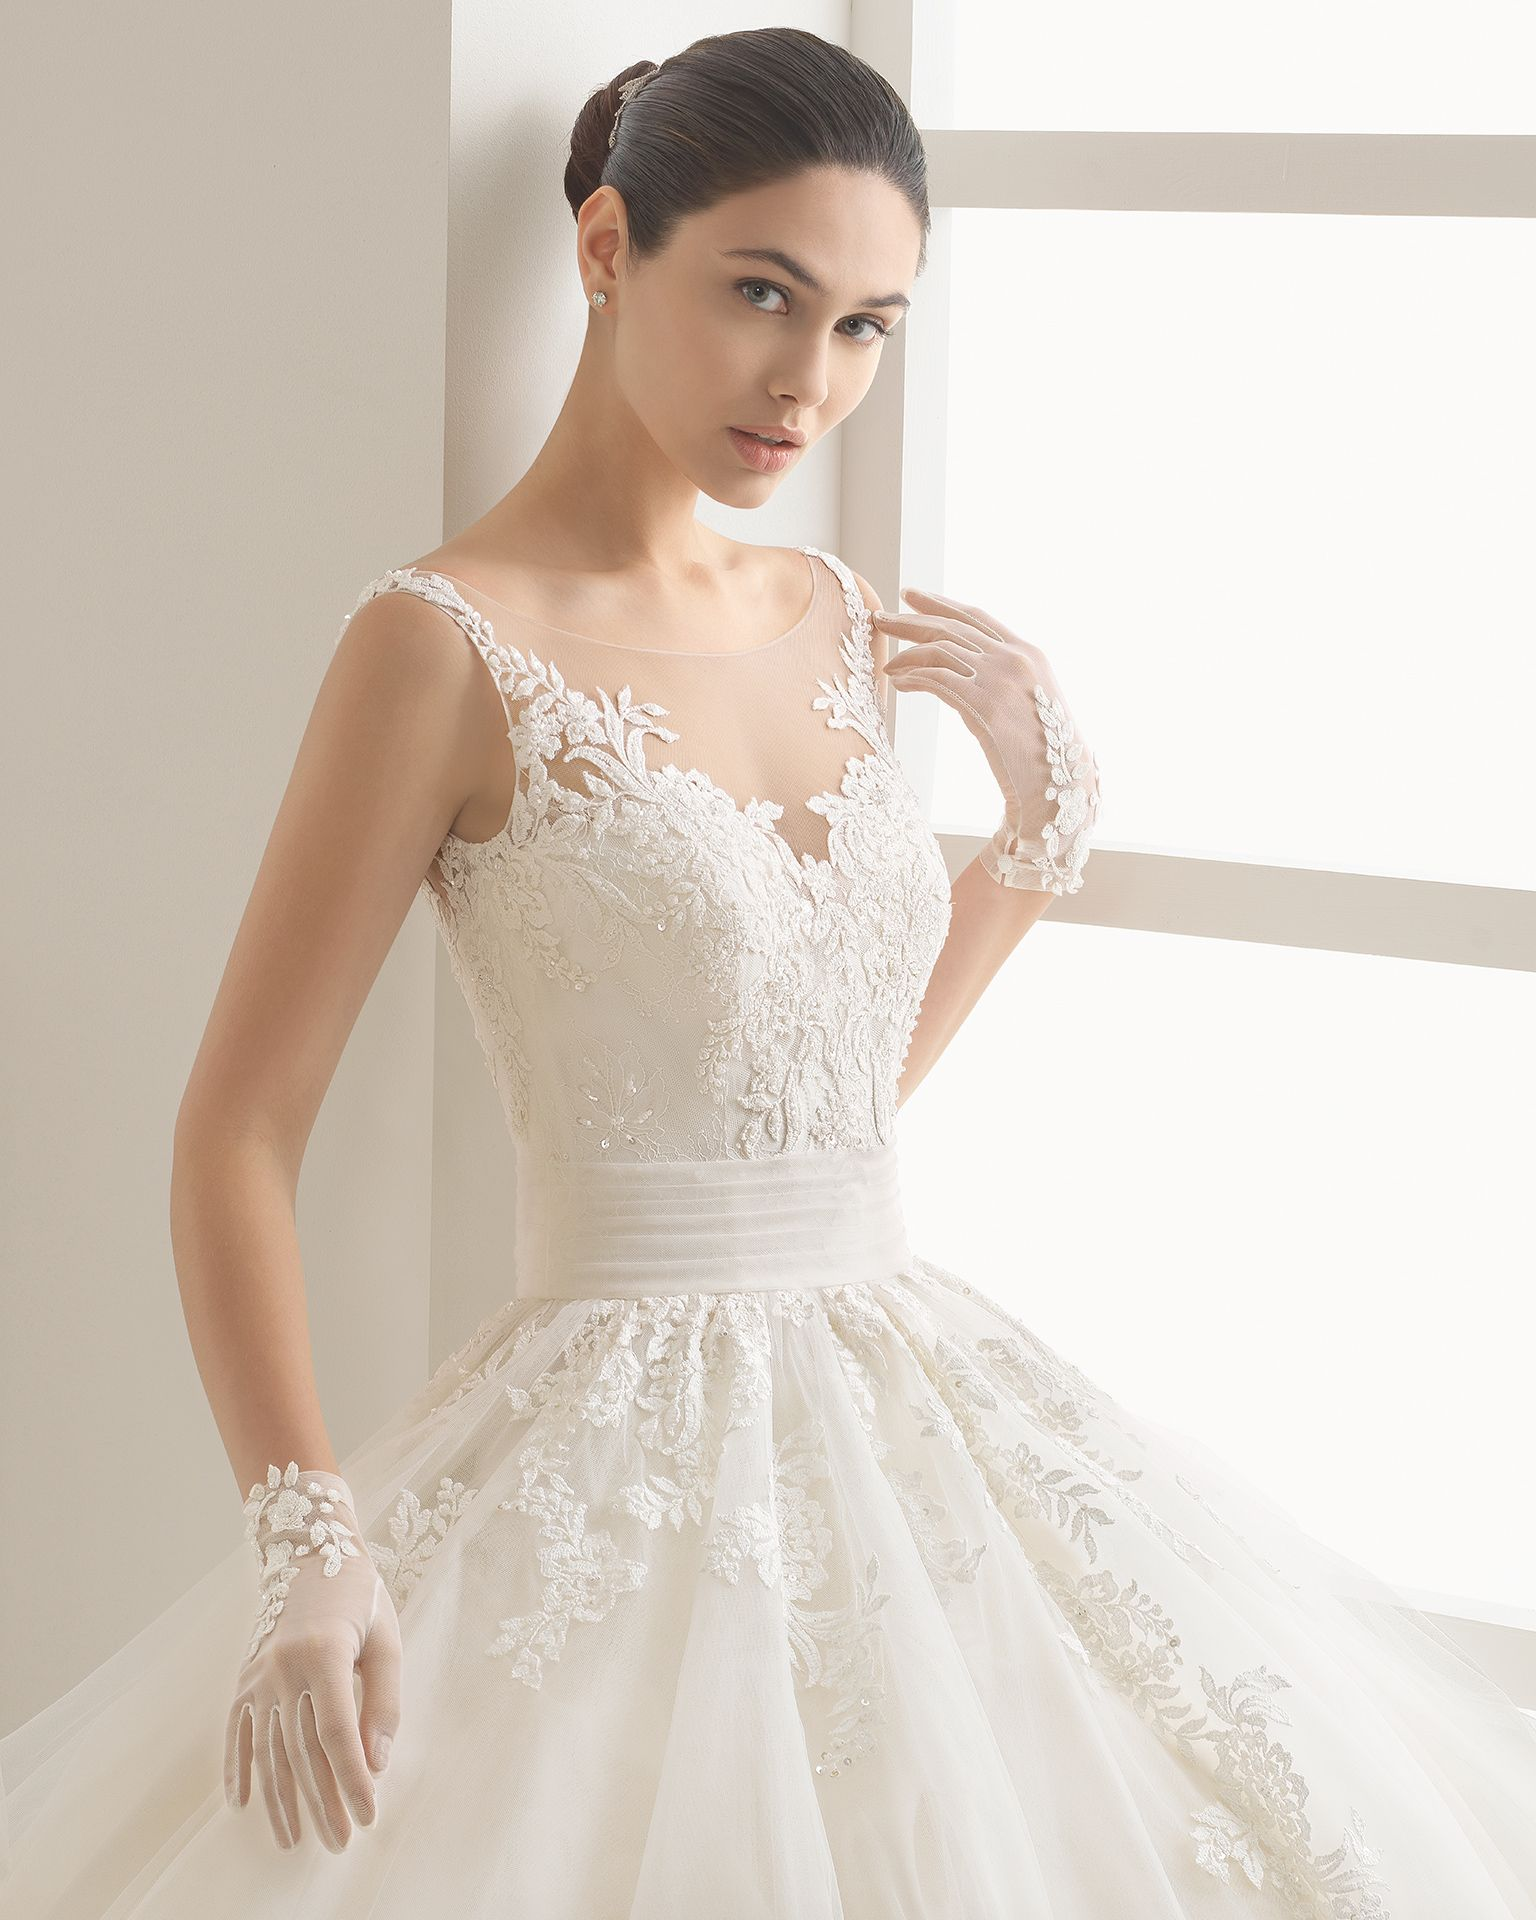 OCULTO - 2017 Bridal Collection. Rosa Clará Two. | Pinterest | Tulle ...